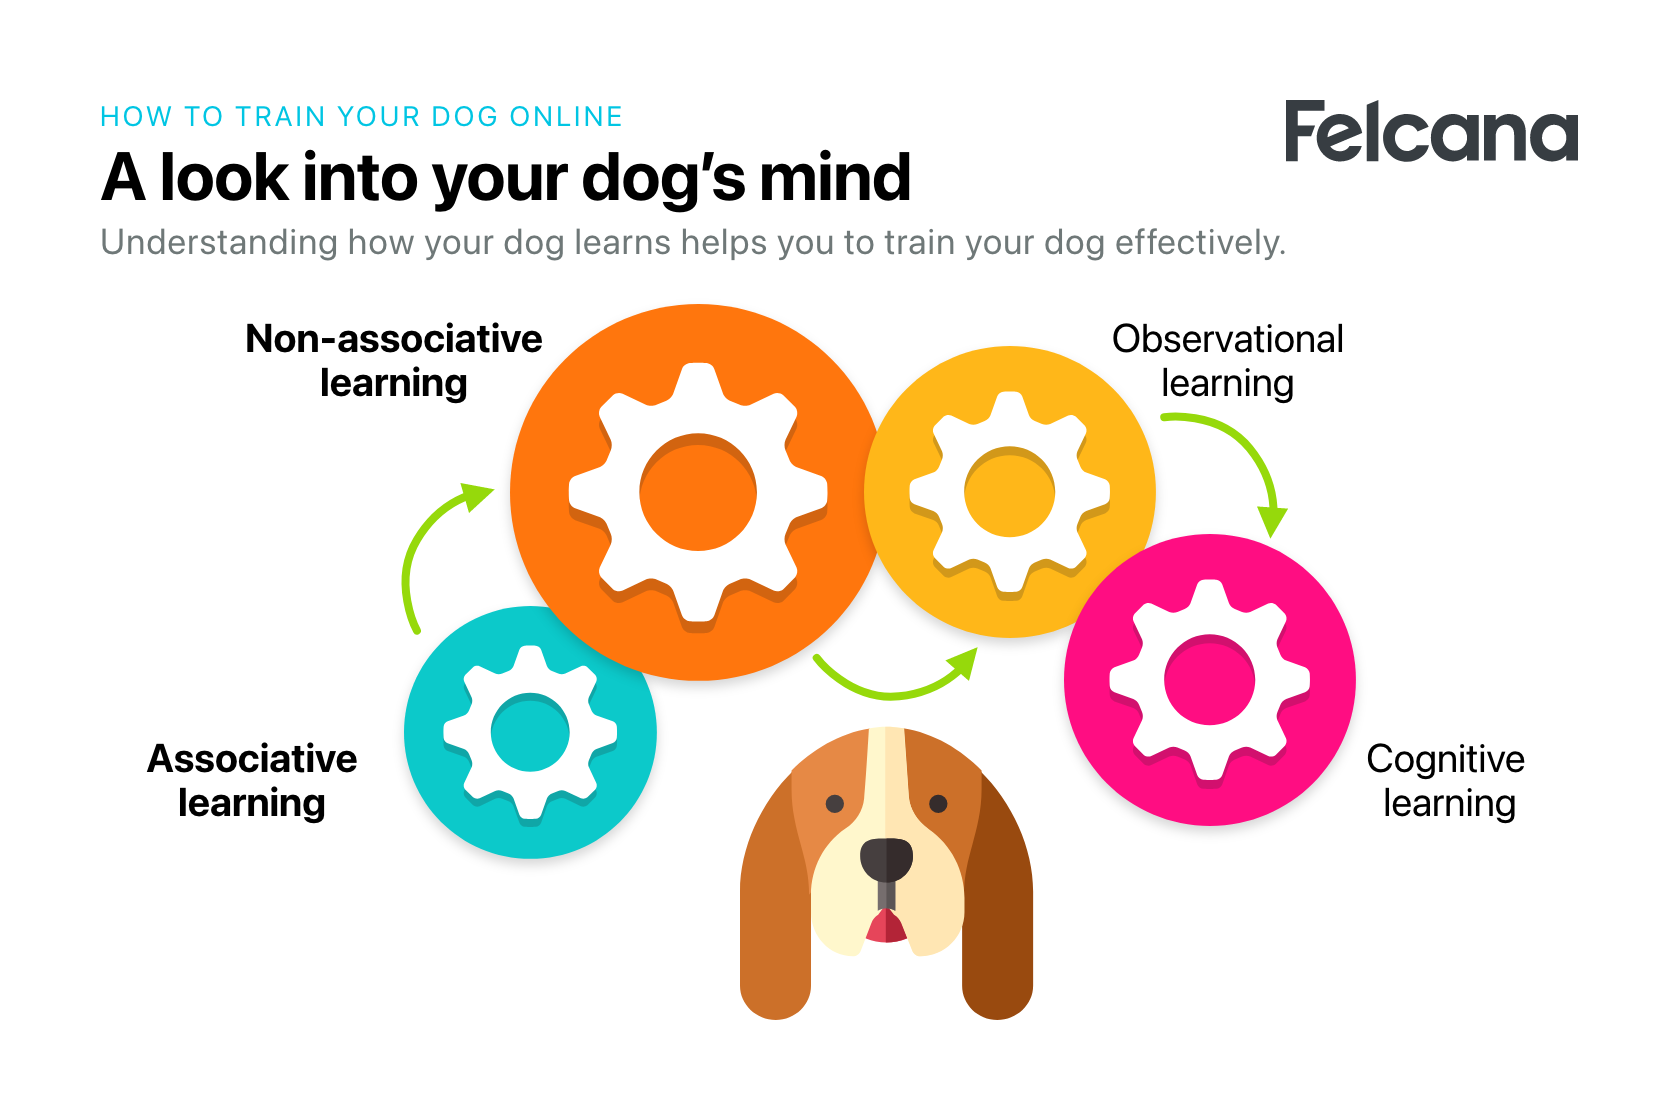 Four cog wheels explaining four different ways dogs learn to aid training